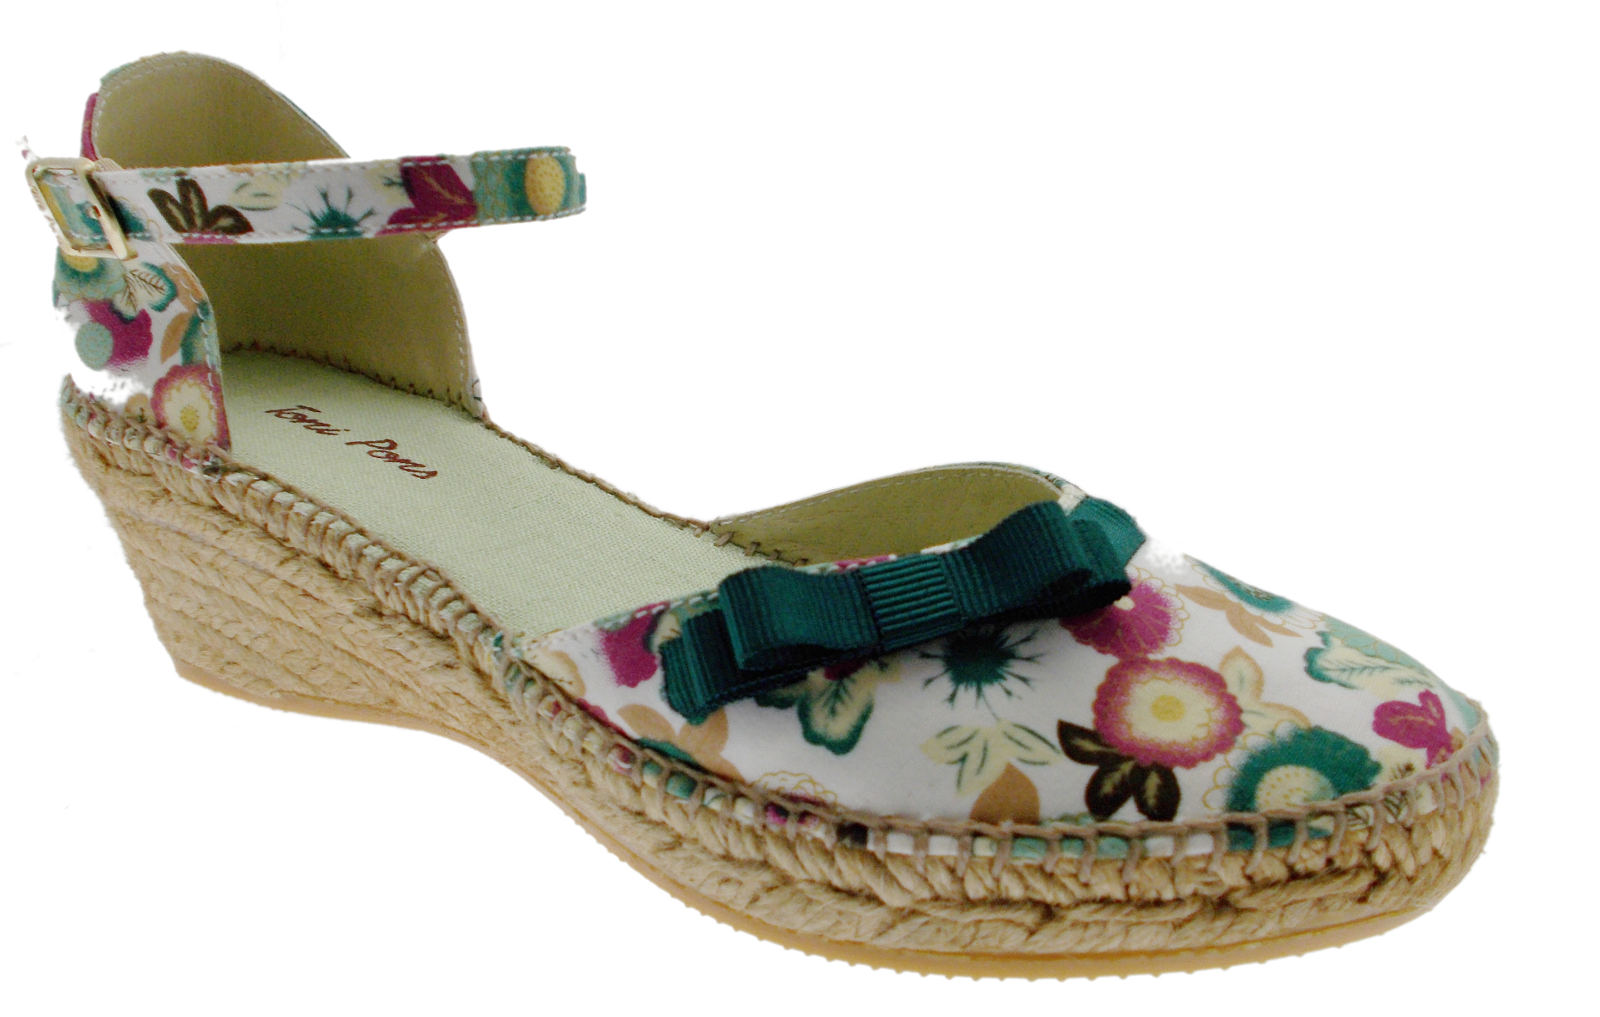 rope Sandale shoe WEISS green multicolor closed wedge art ABRIL Toni Pons